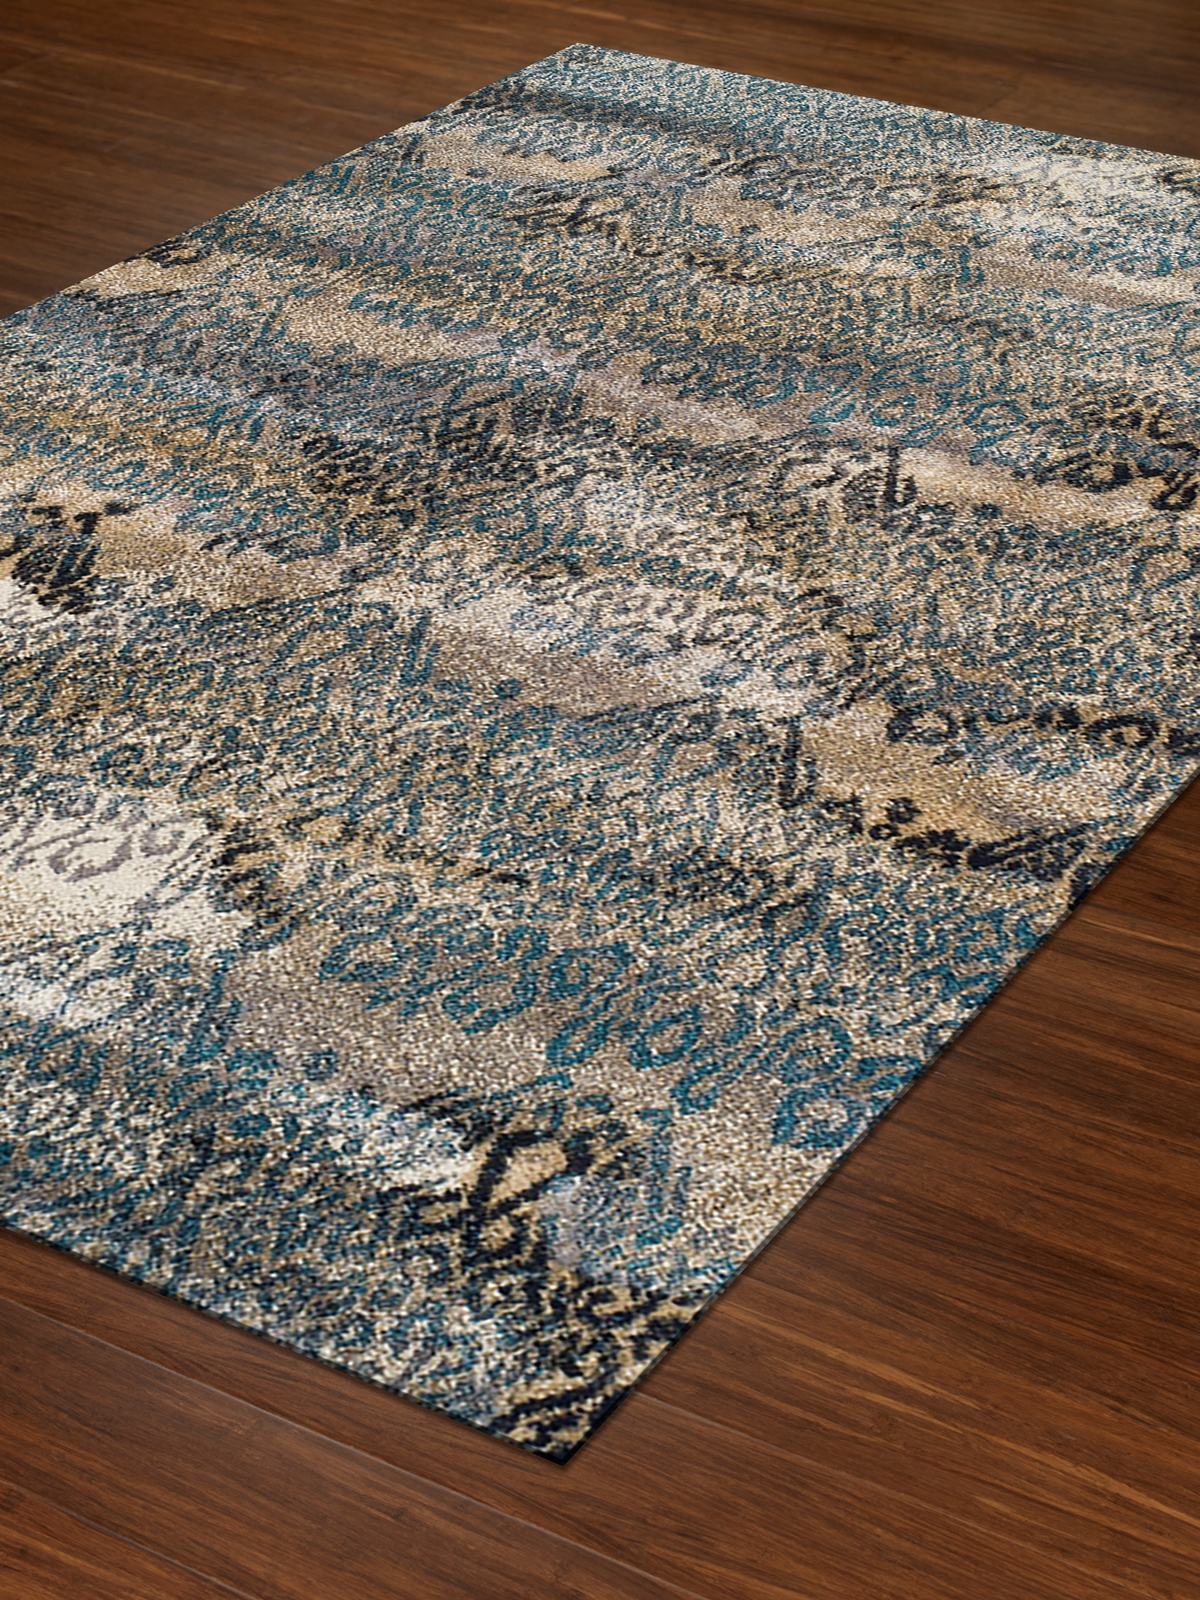 Dalyn Rossini Rs5501 Teal Area Rug Free Shipping